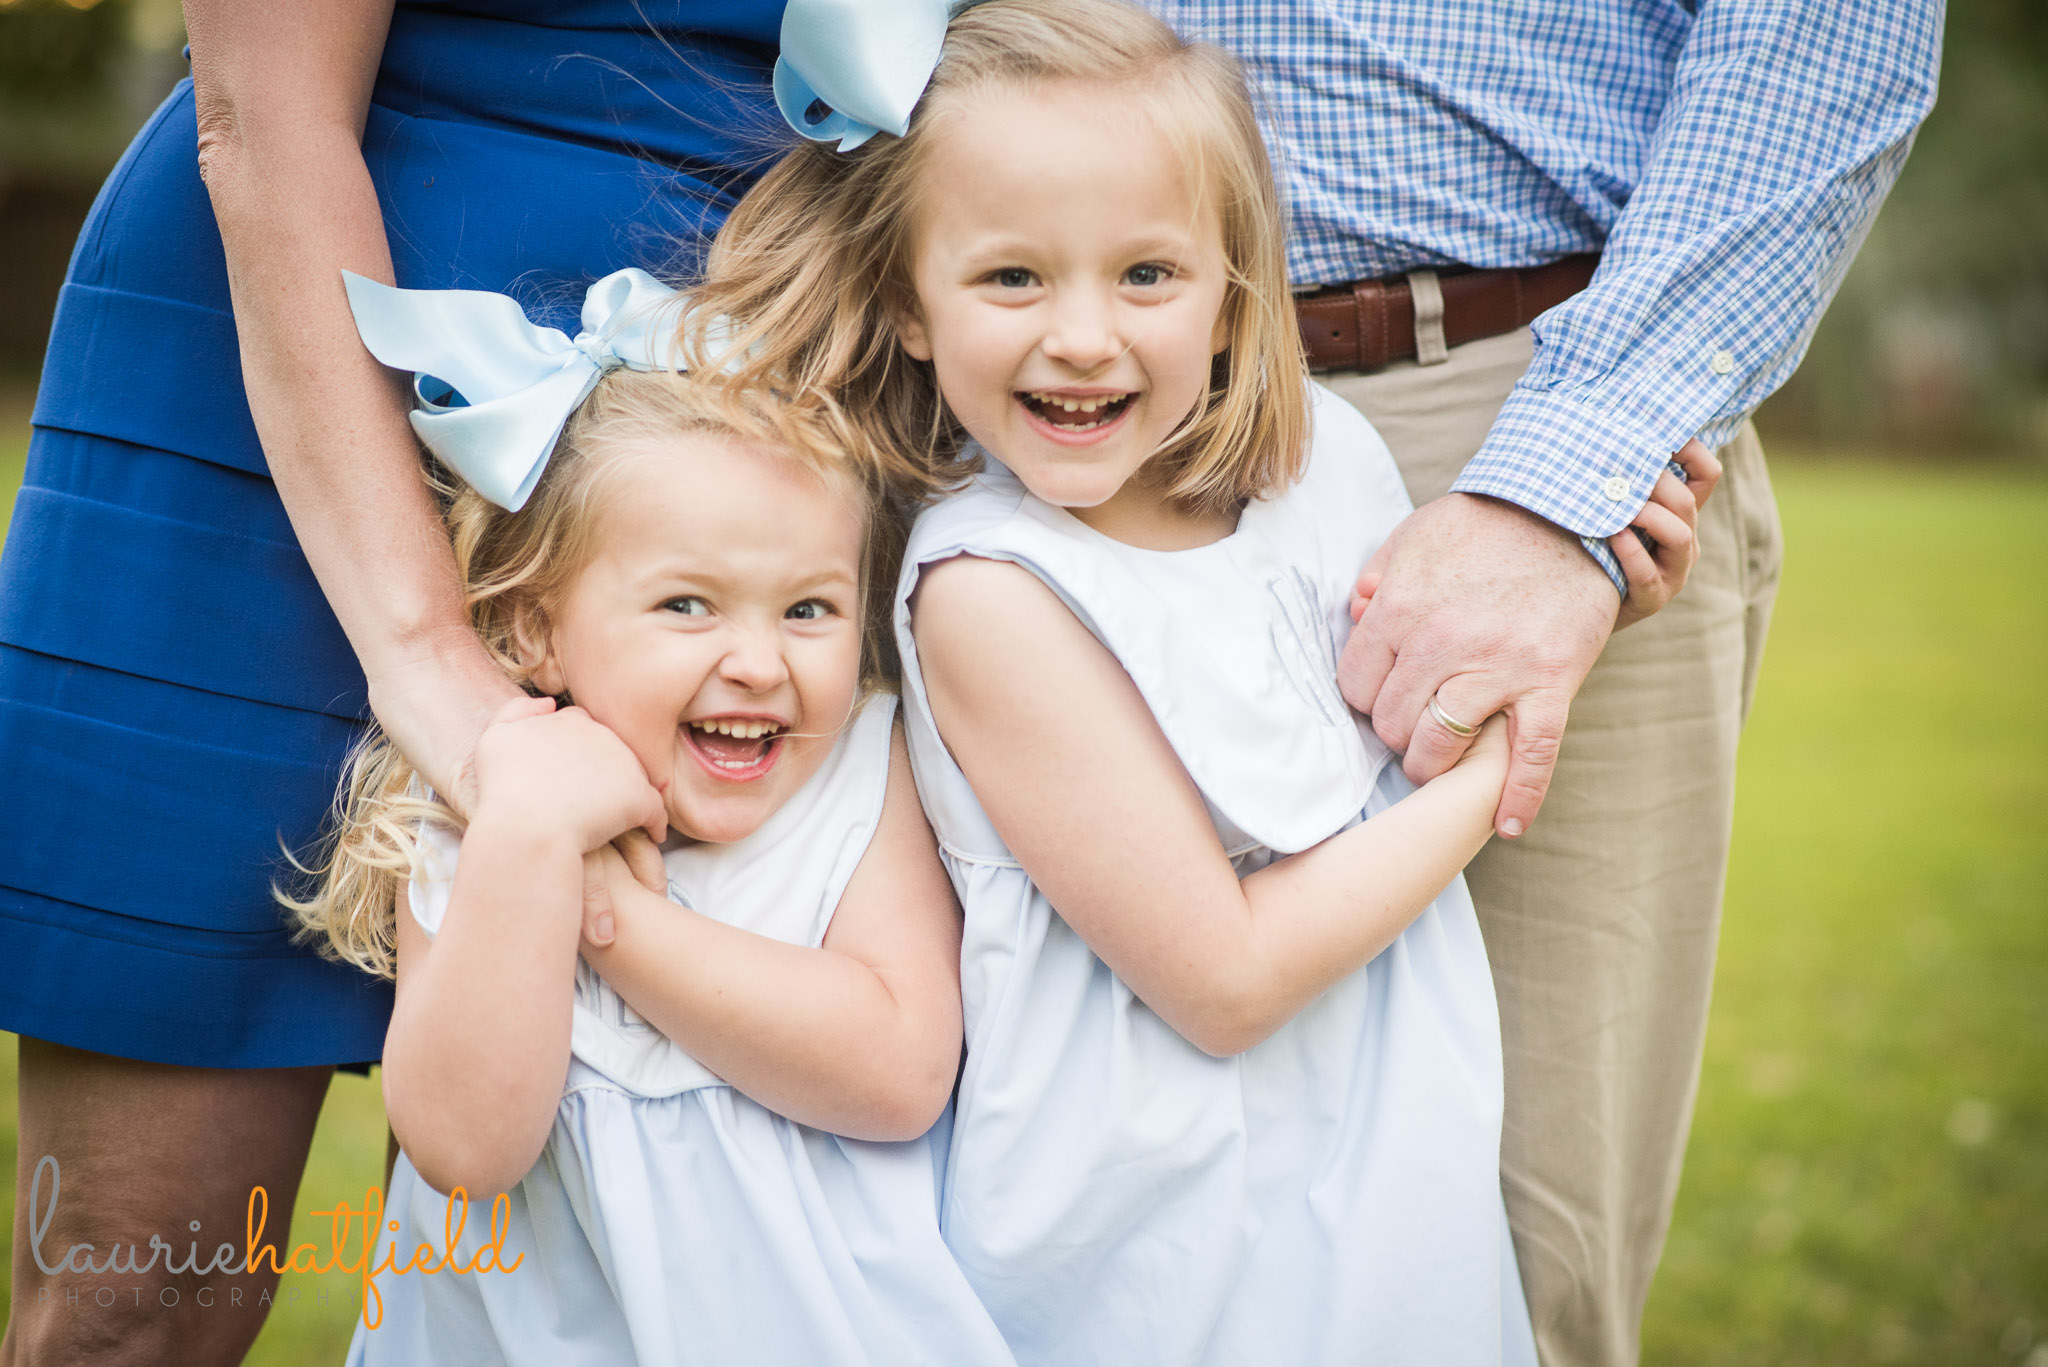 2 blonde sisters   Mobile AL lifestyle family photographer   Laurie Hatfield Photography